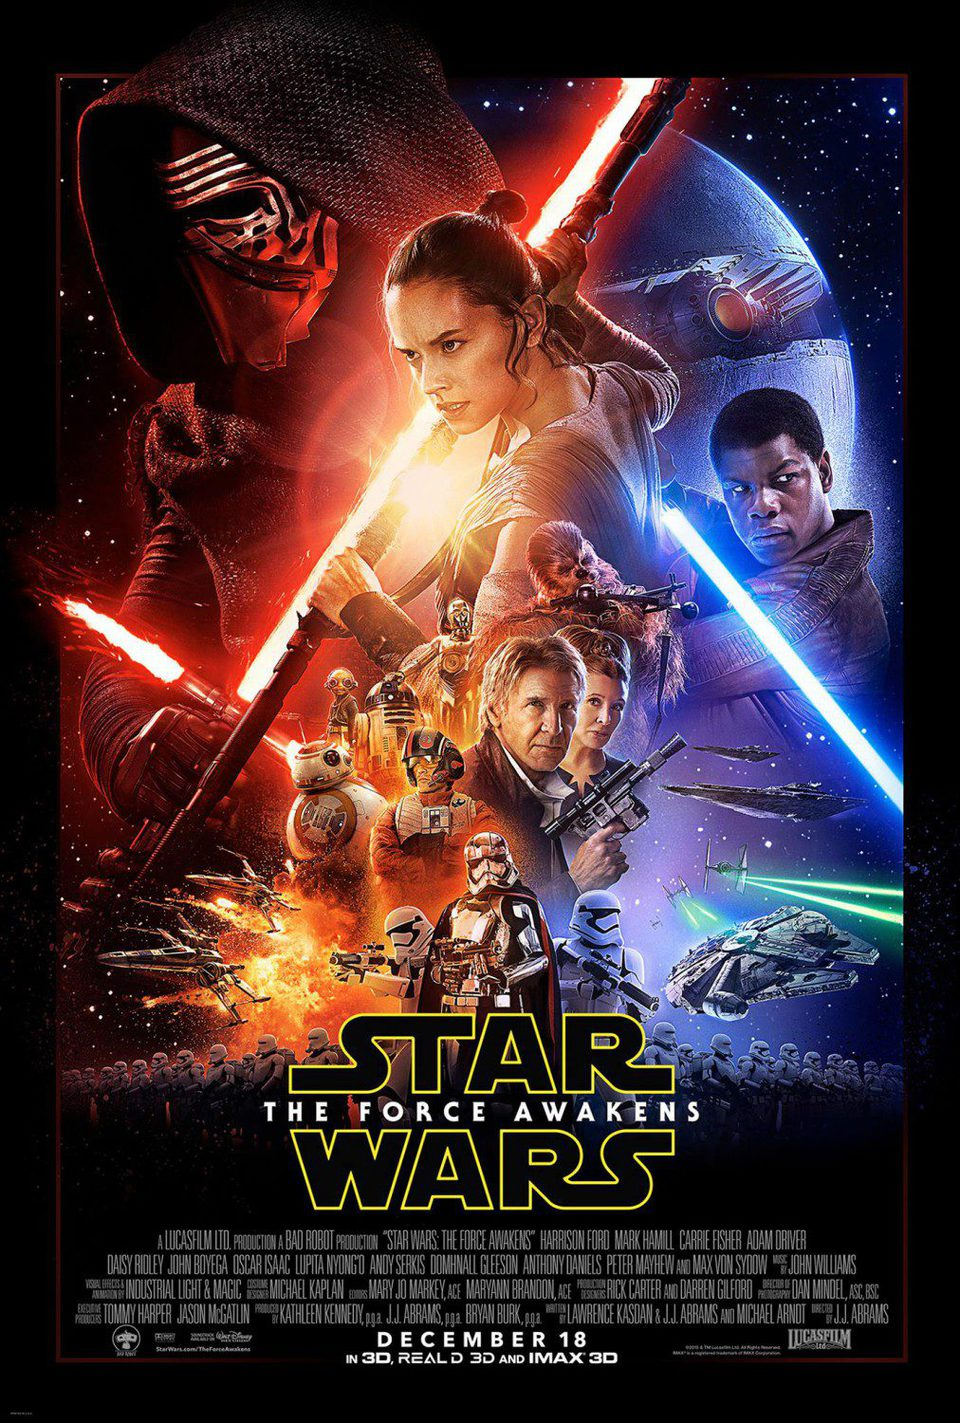 EEUU poster for Star Wars: Episode VII - The Force Awakens